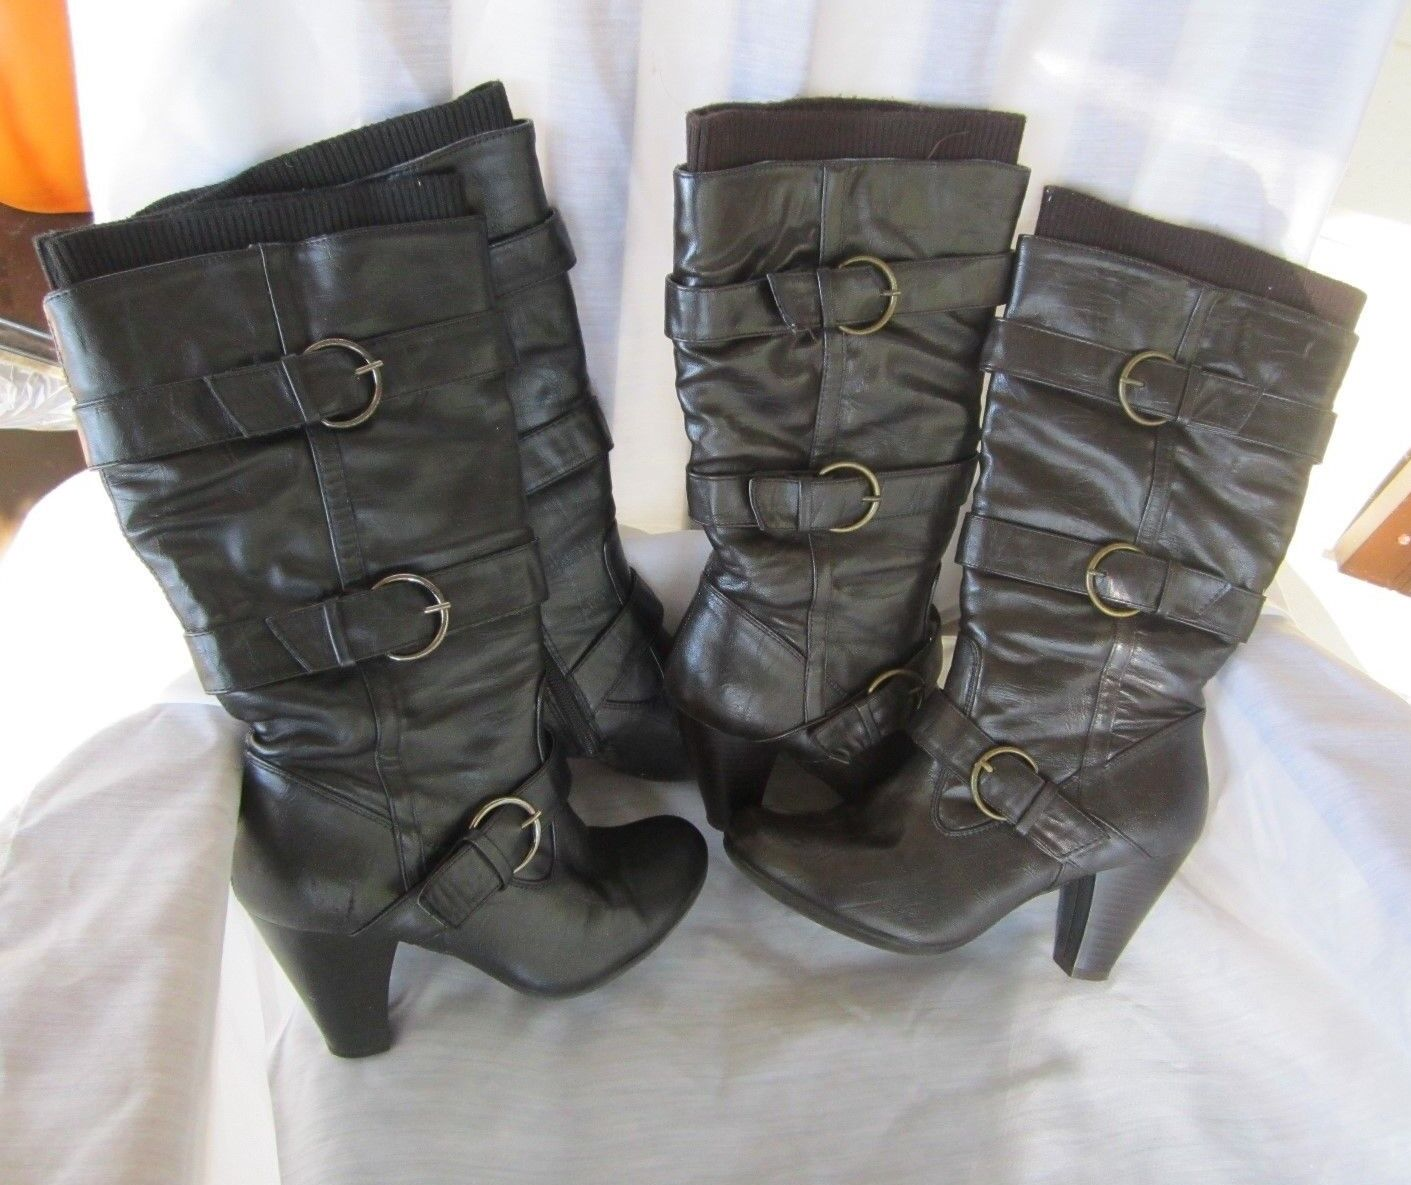 New Directions Boot 2 Pair Black Brown Size 6.5 Buckle Design